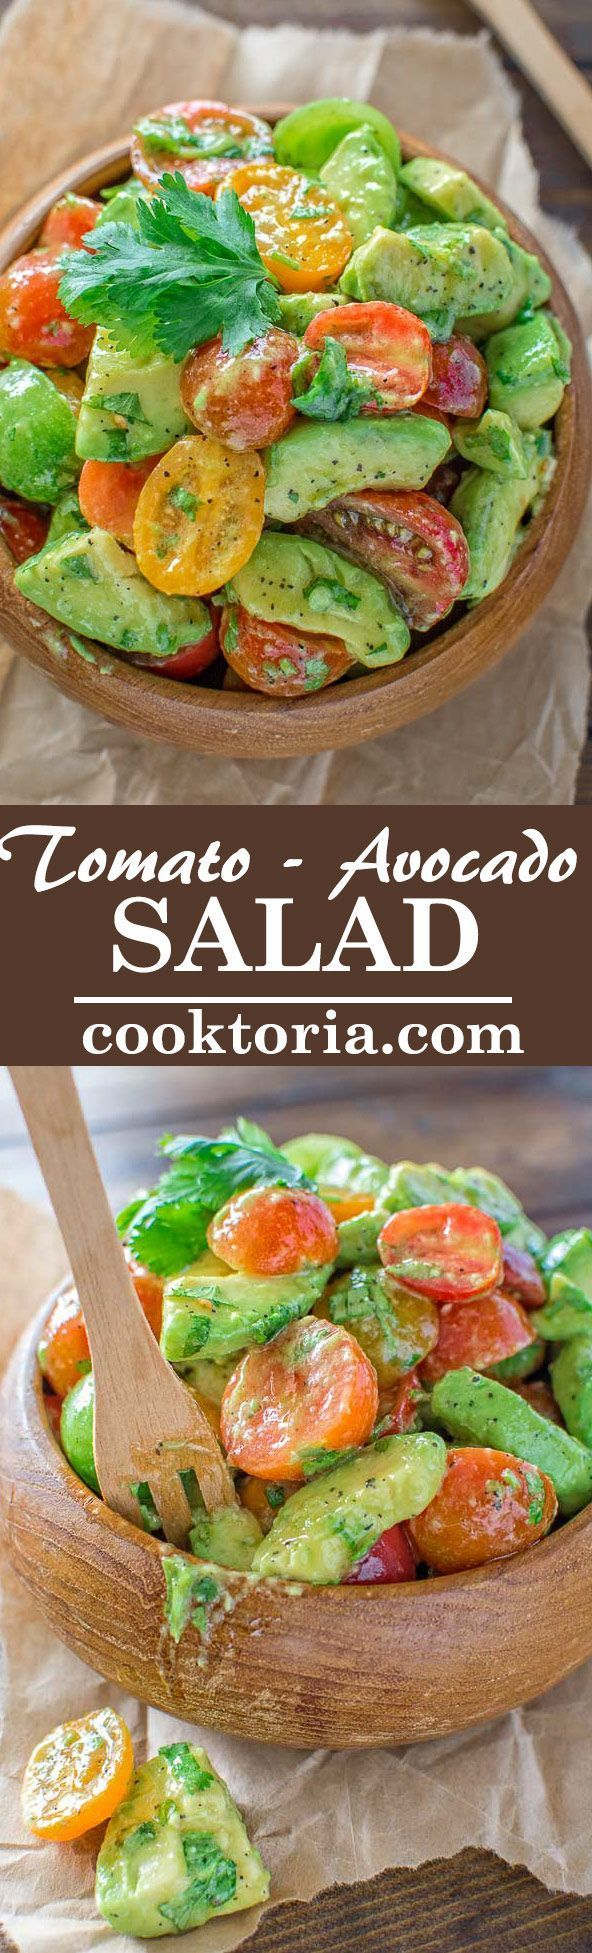 Healthy and so flavorful, this Tomato Avocado Salad makes a great addition to your dinner or lunch. This is one of the most loved recipes in my family! ❤